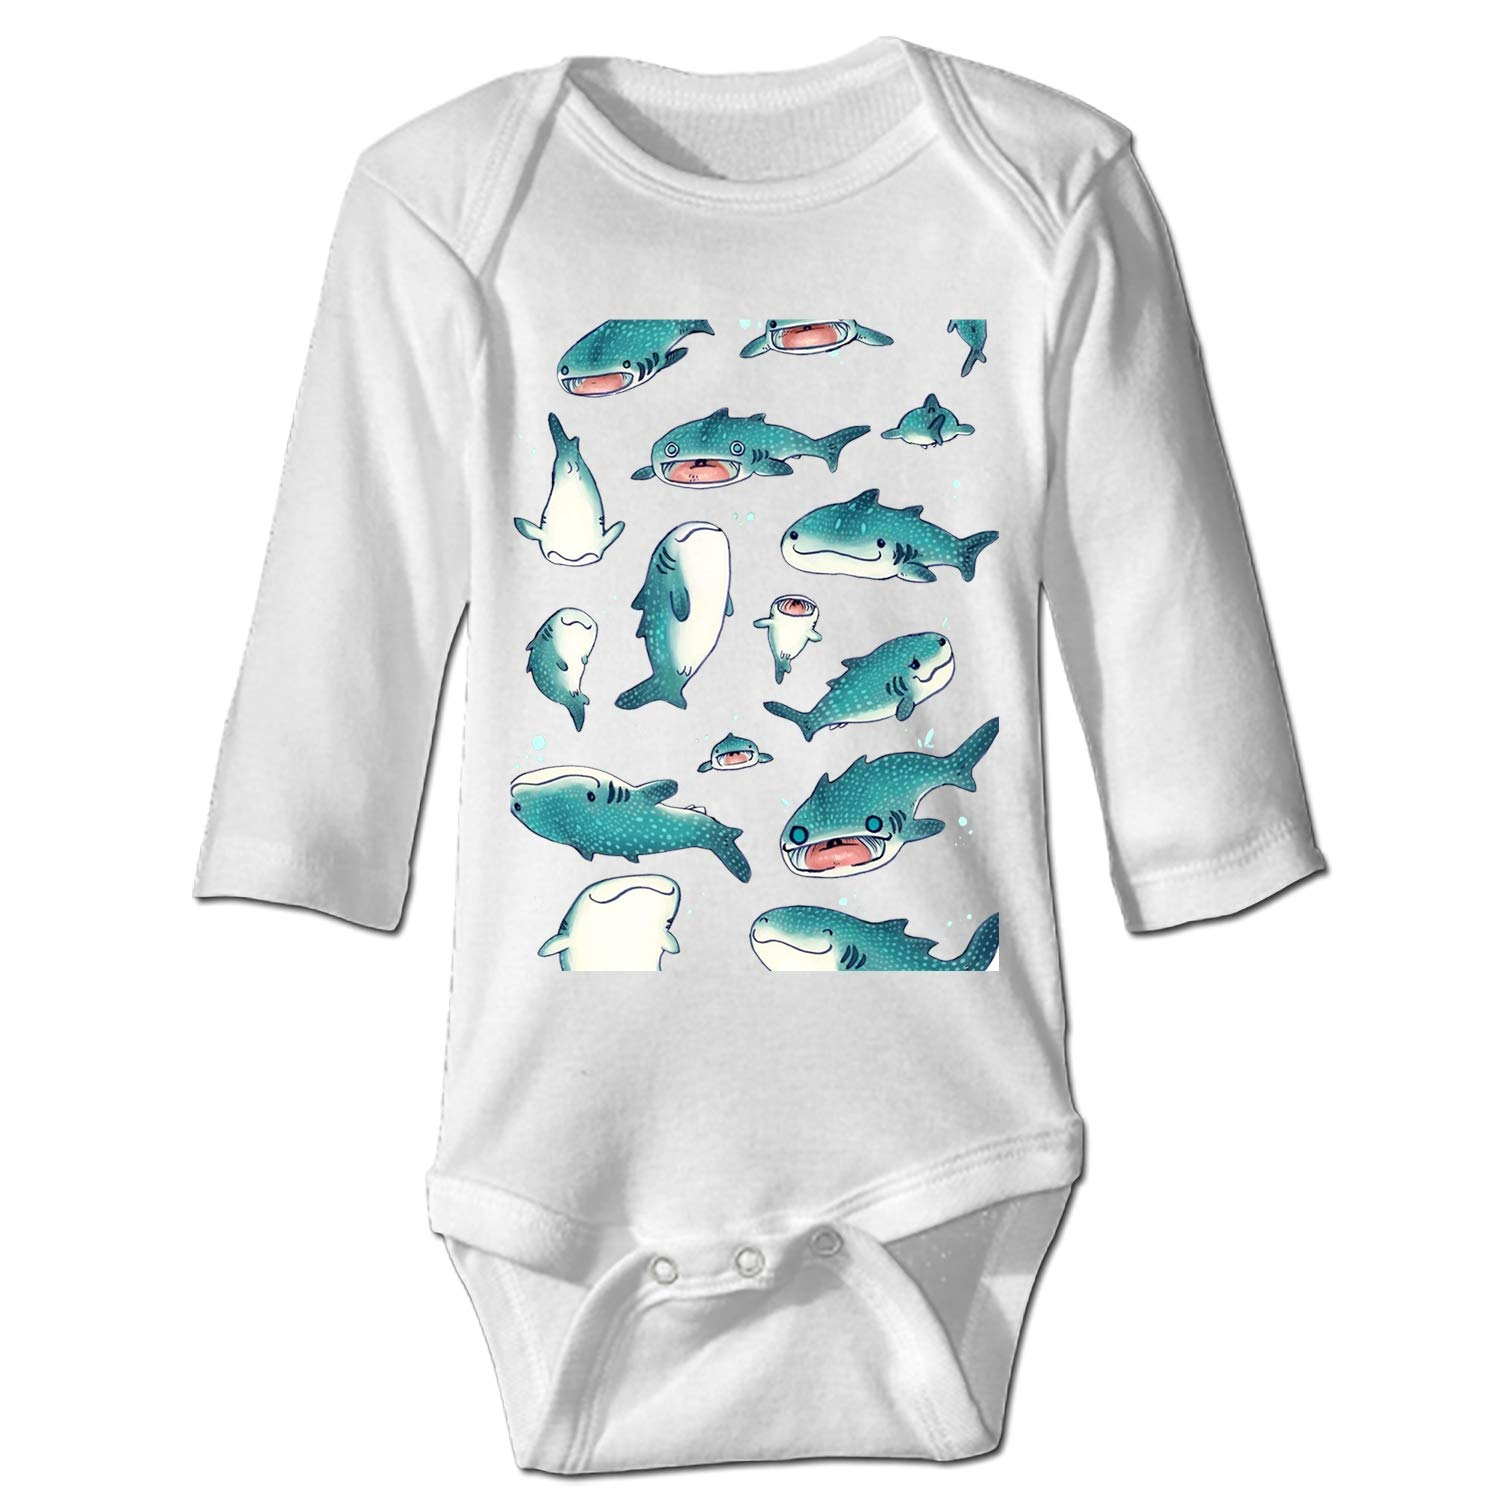 Pink Baby Dolphin Bodysuit for Baby Long-Sleeve Infant Onesies